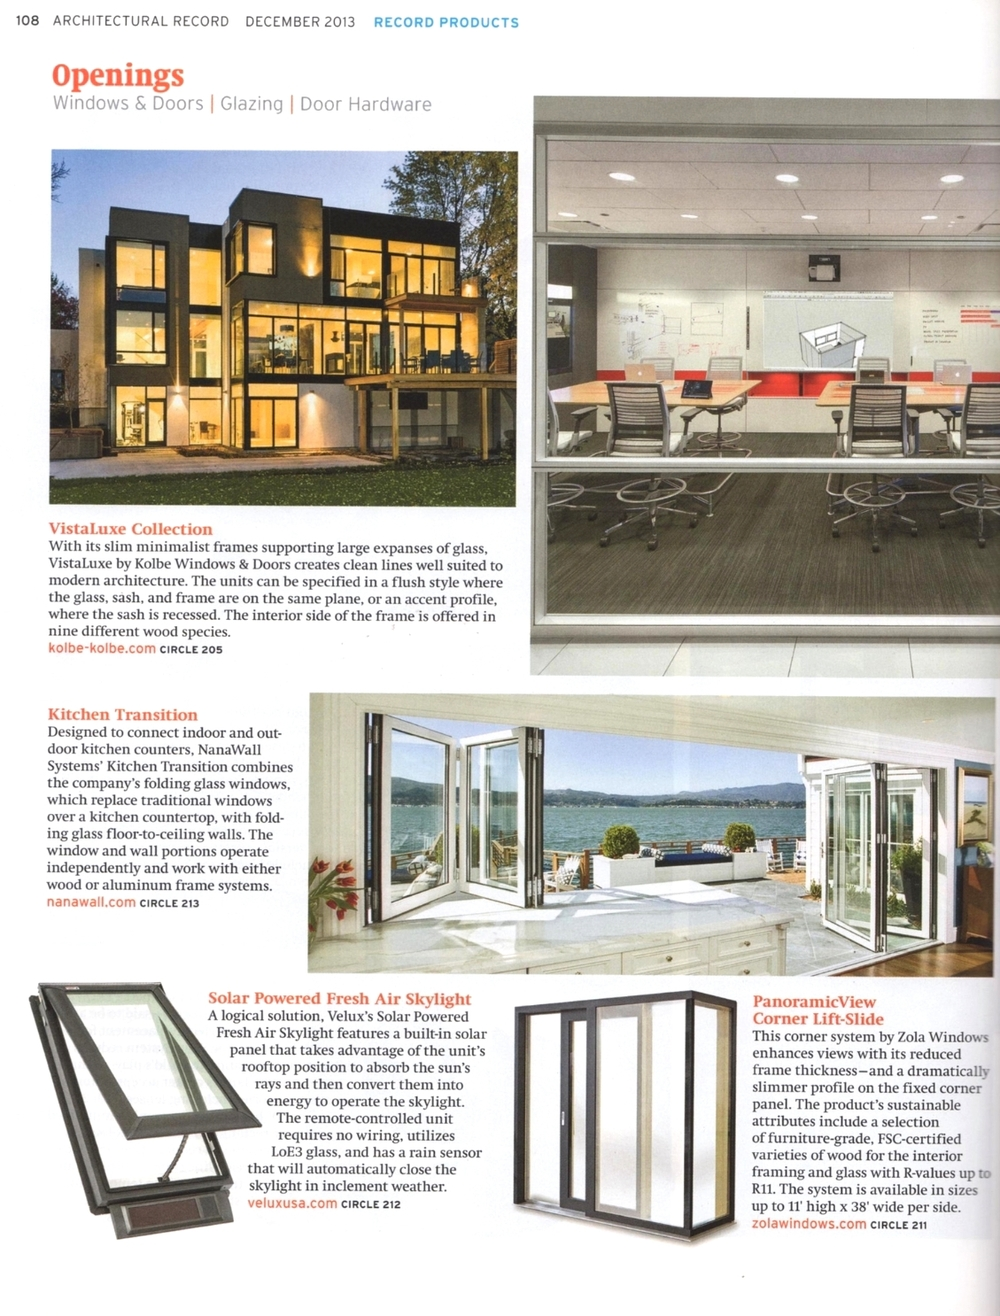 ARCHITECTURAL RECORD-12-2013_page 2.jpg